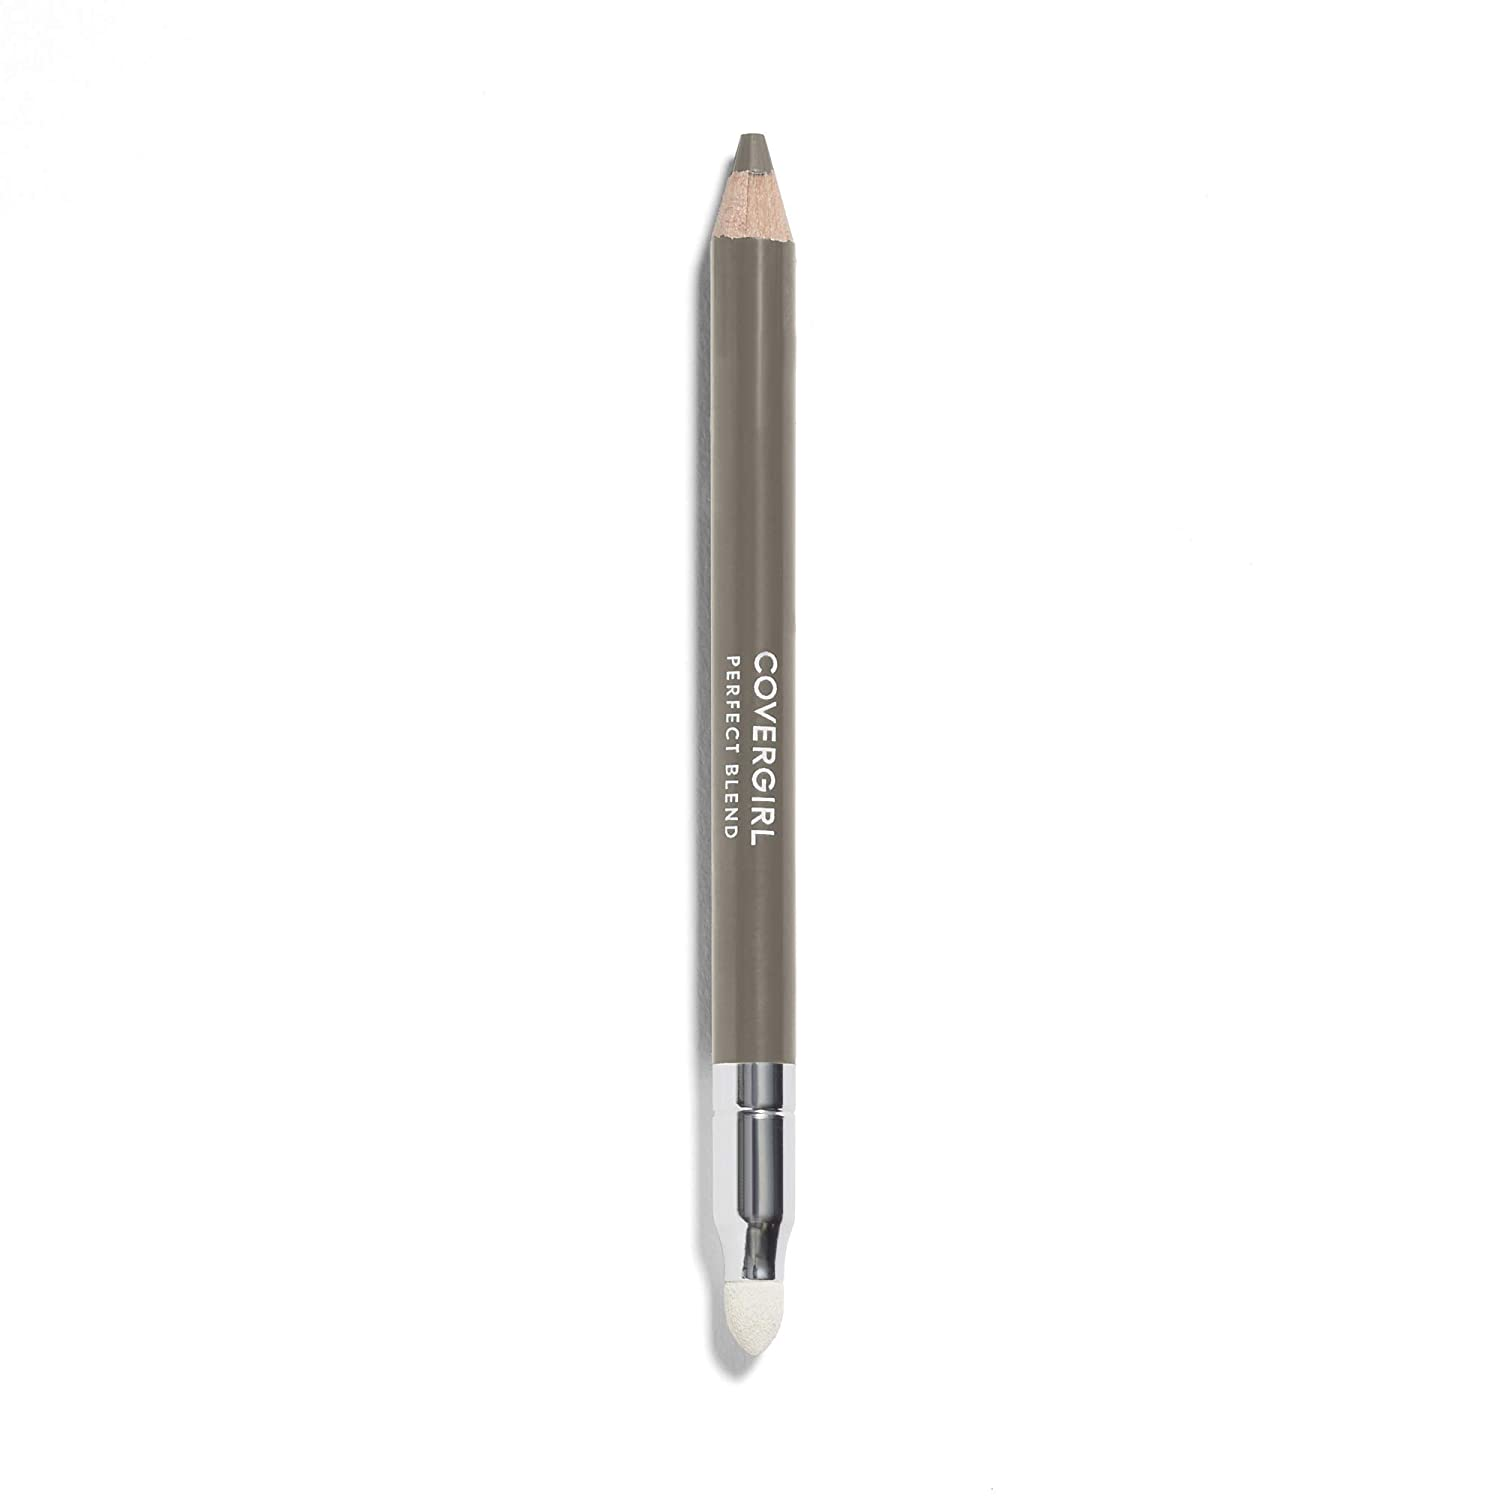 COVERGIRL Perfect Blend Eyeliner Pencil, Smoky Taupe 130 (1 Count) (Packaging May Vary) Eyeliner Pencil with Blending Tip